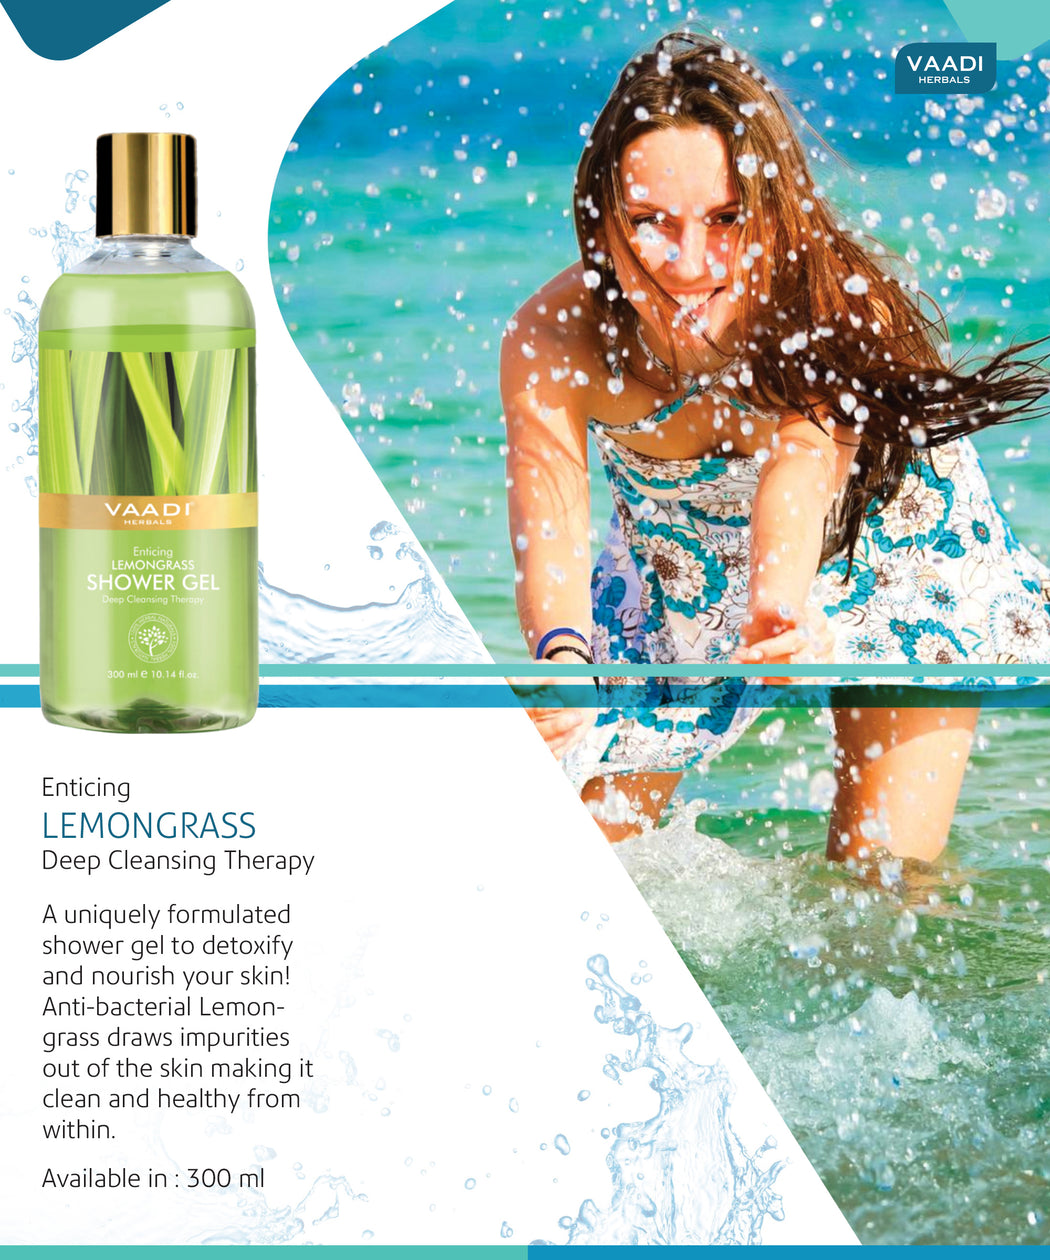 Enticing Lemongrass Shower Gel (300 ml)